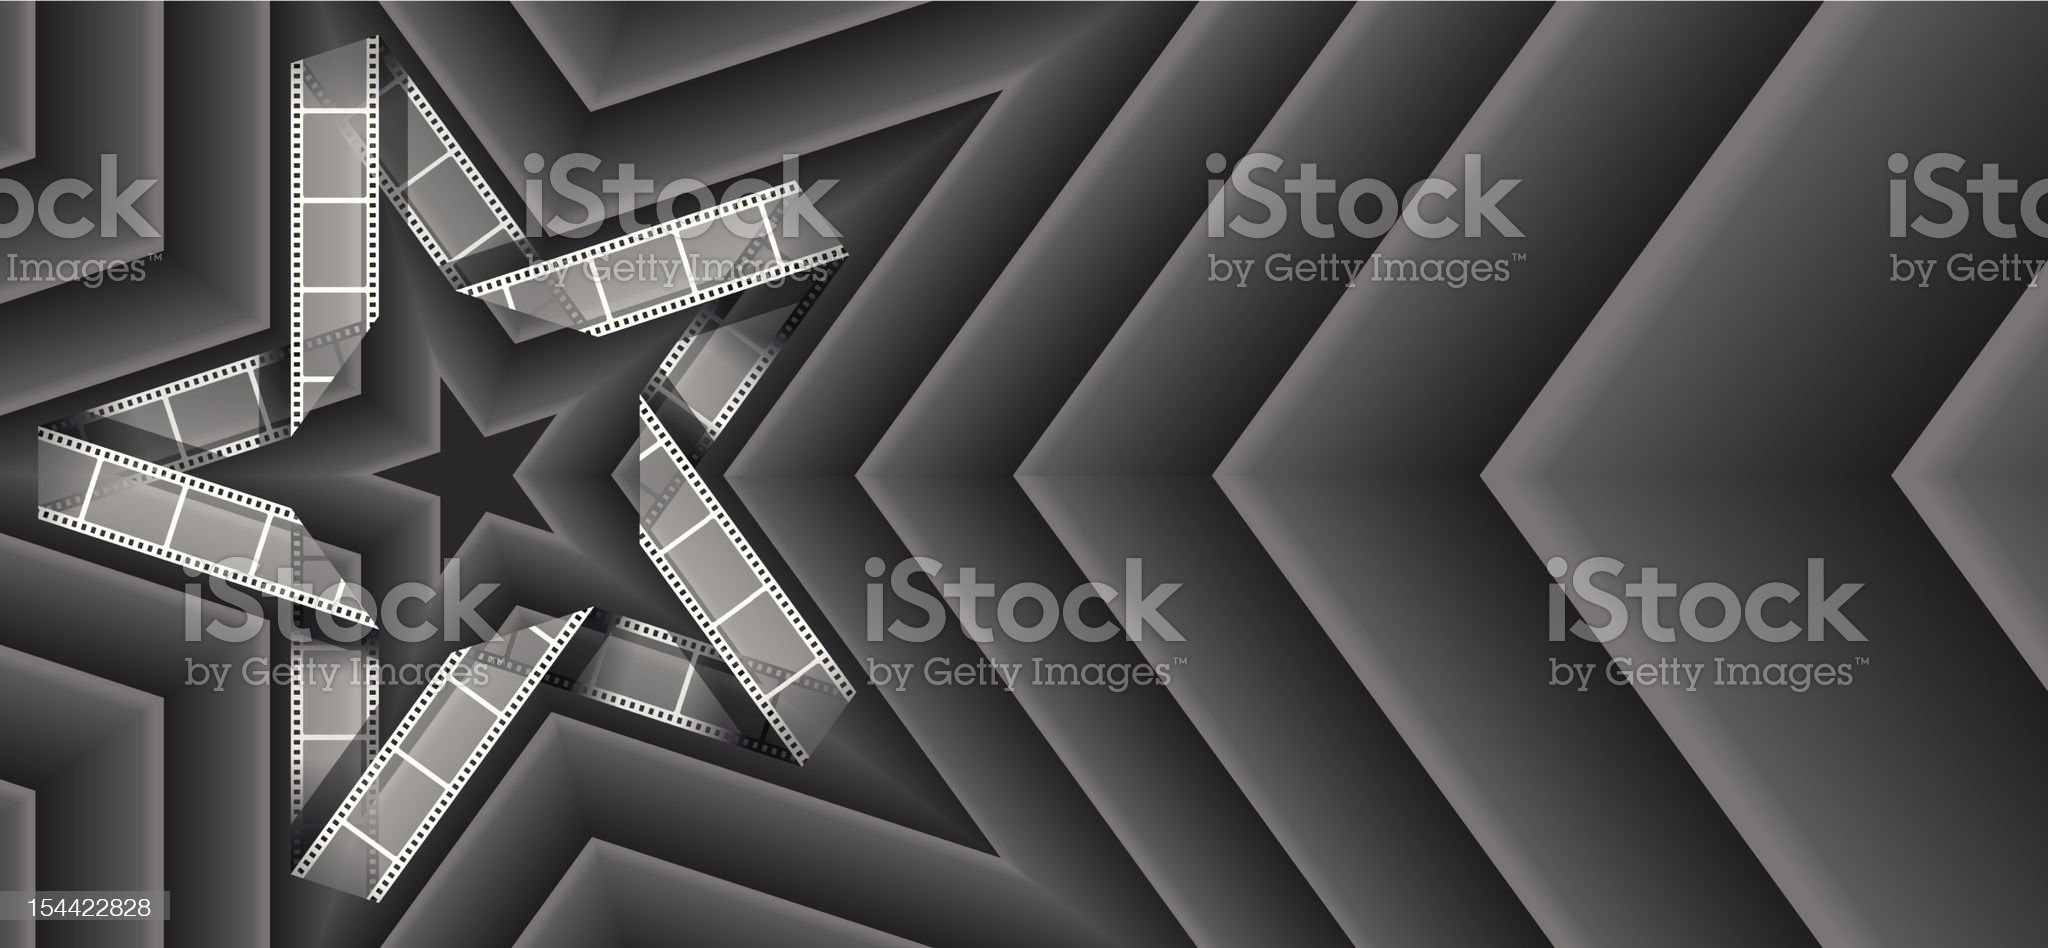 Film strip star royalty-free stock vector art